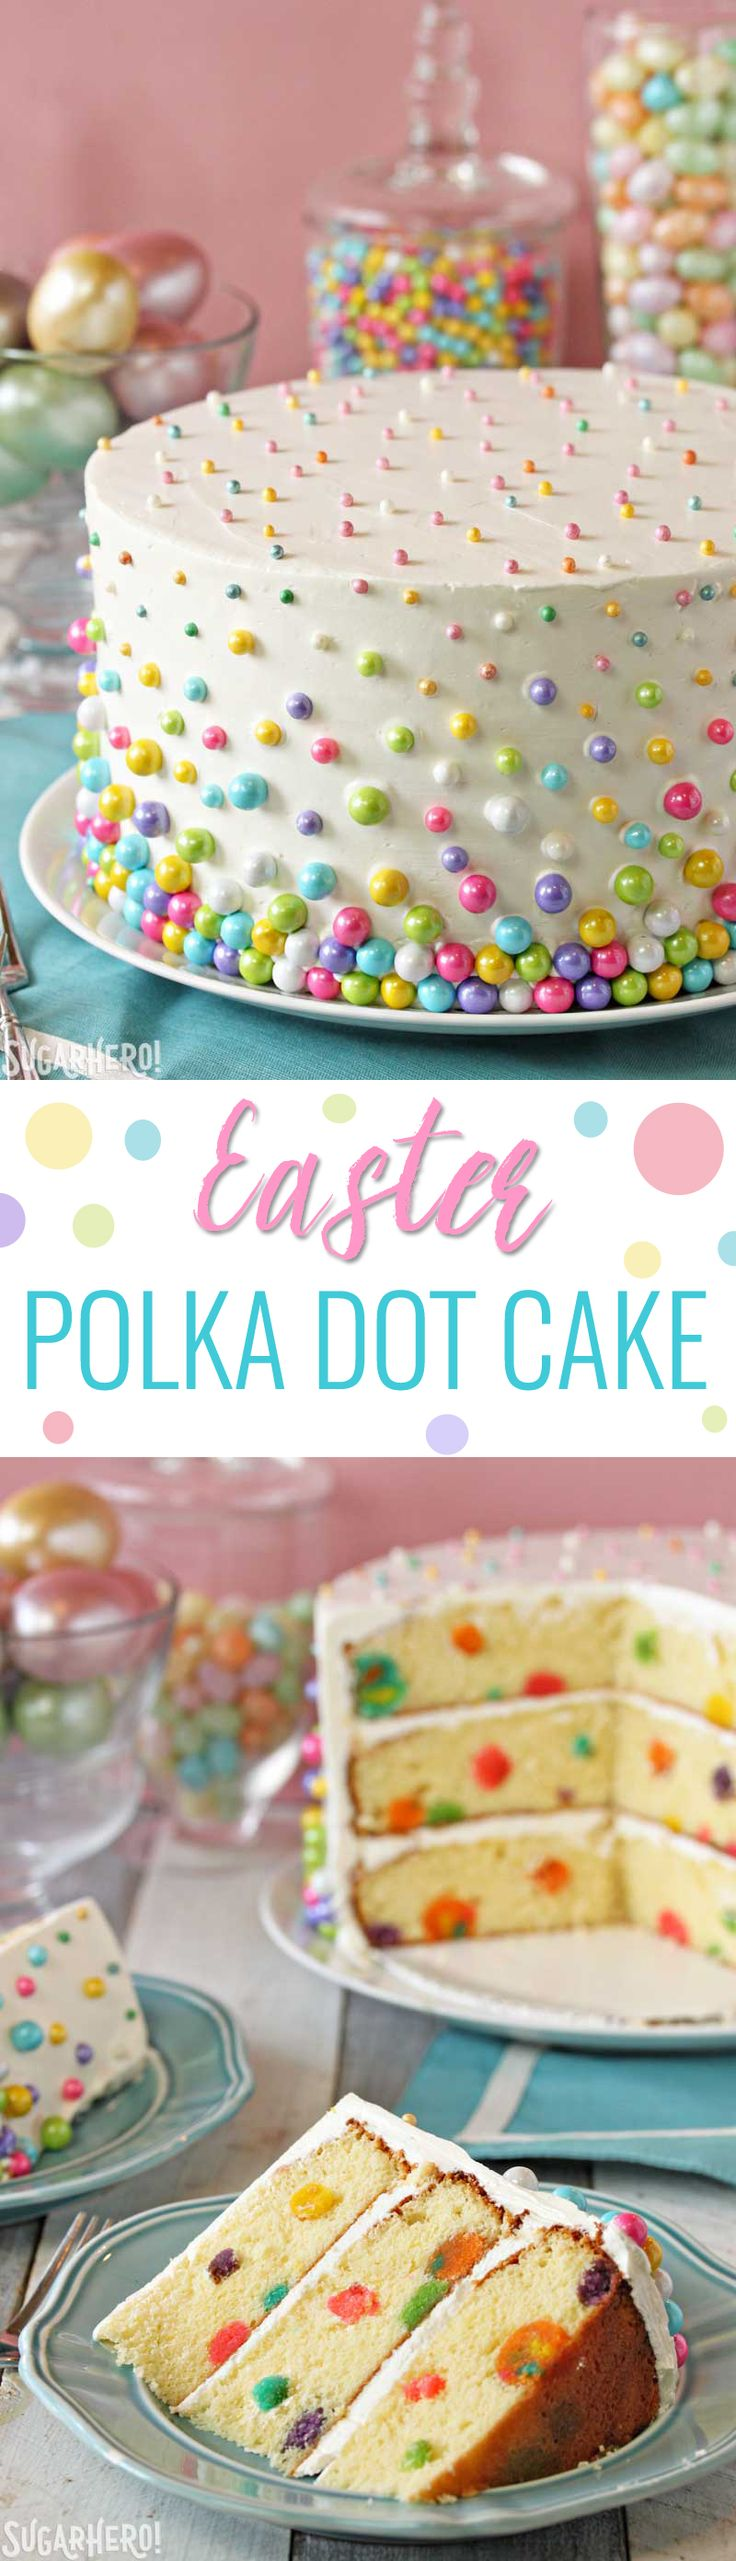 Easter Polka Dot Cake - a delicious lemon-coconut cake with polka dots on both the outside AND the inside! | From SugarHero.com